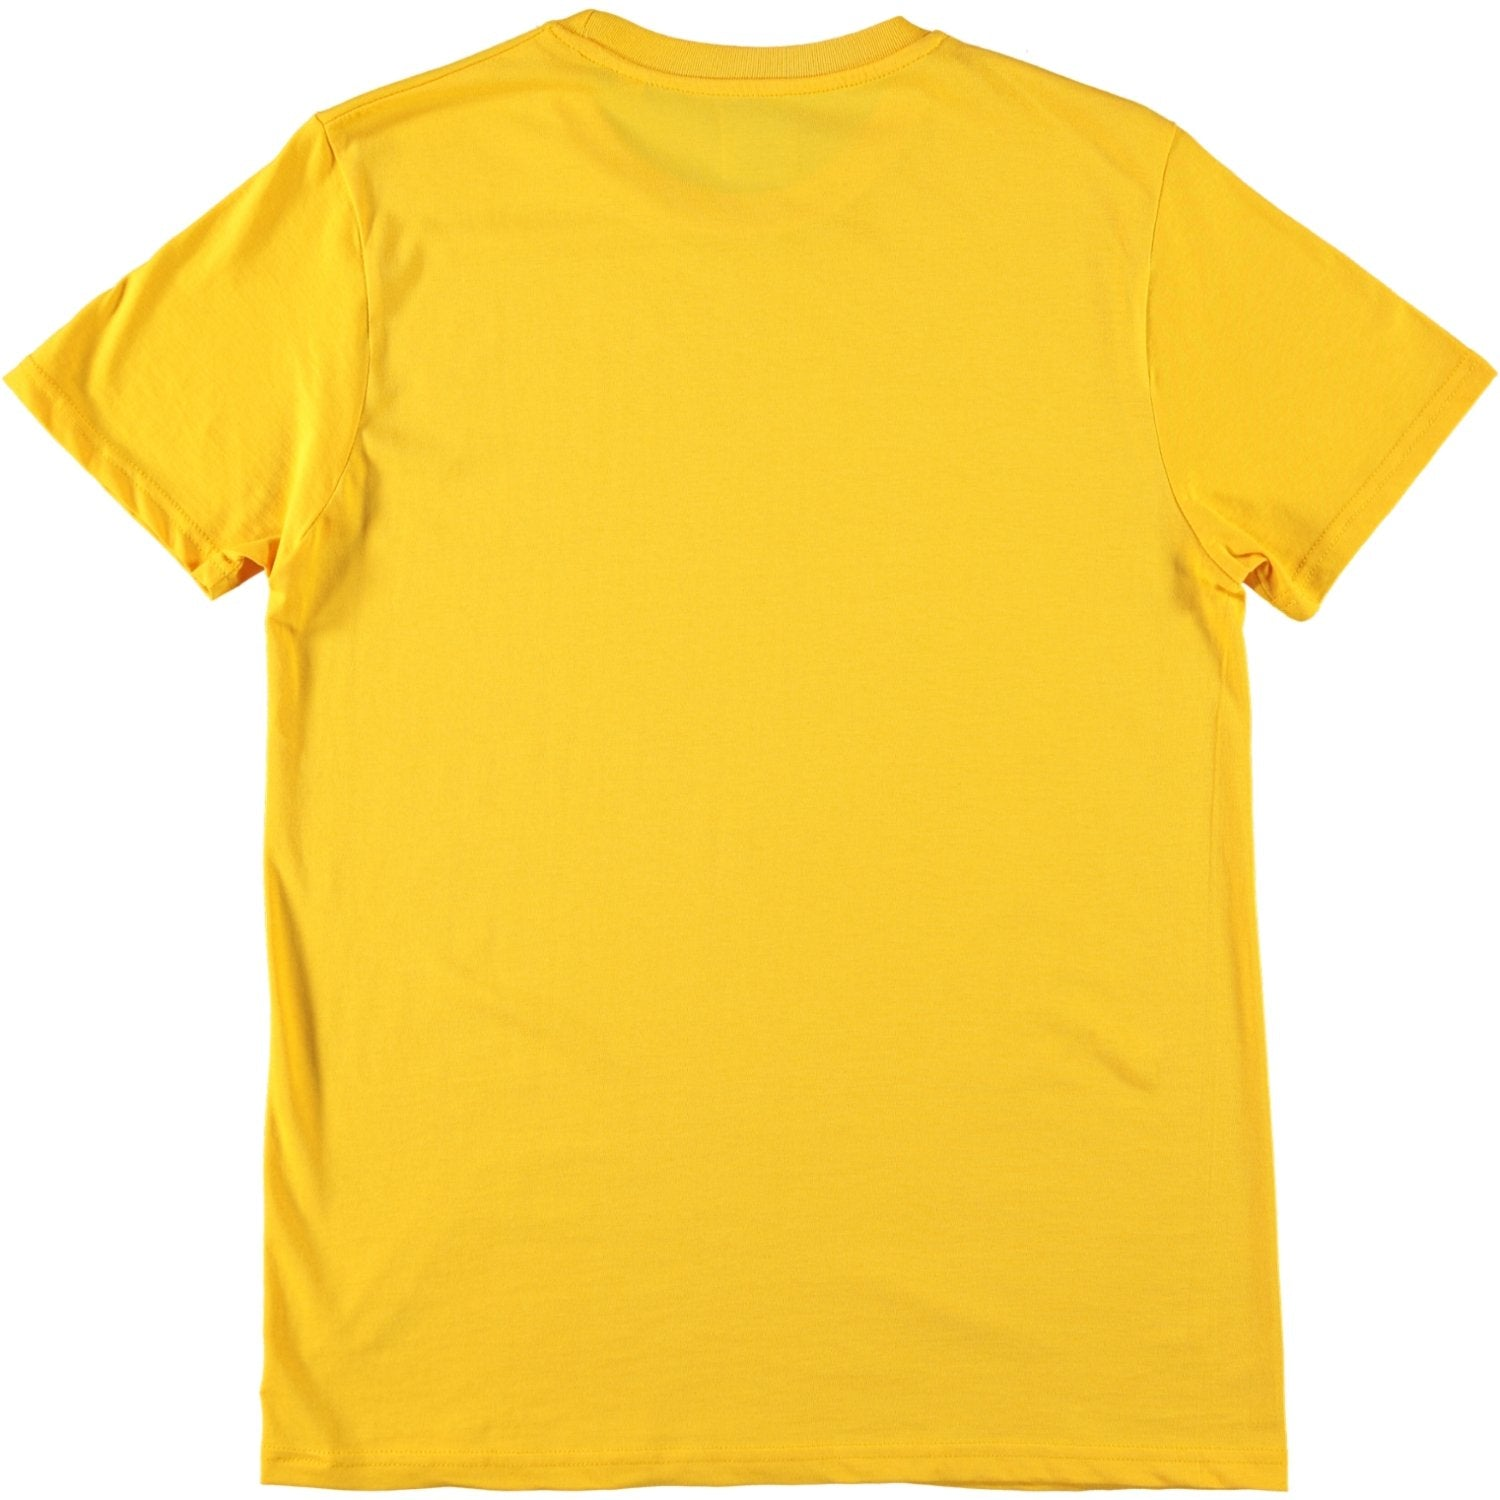 SRM x Trafford Parsons Billy Idol Tee Spectra Yellow